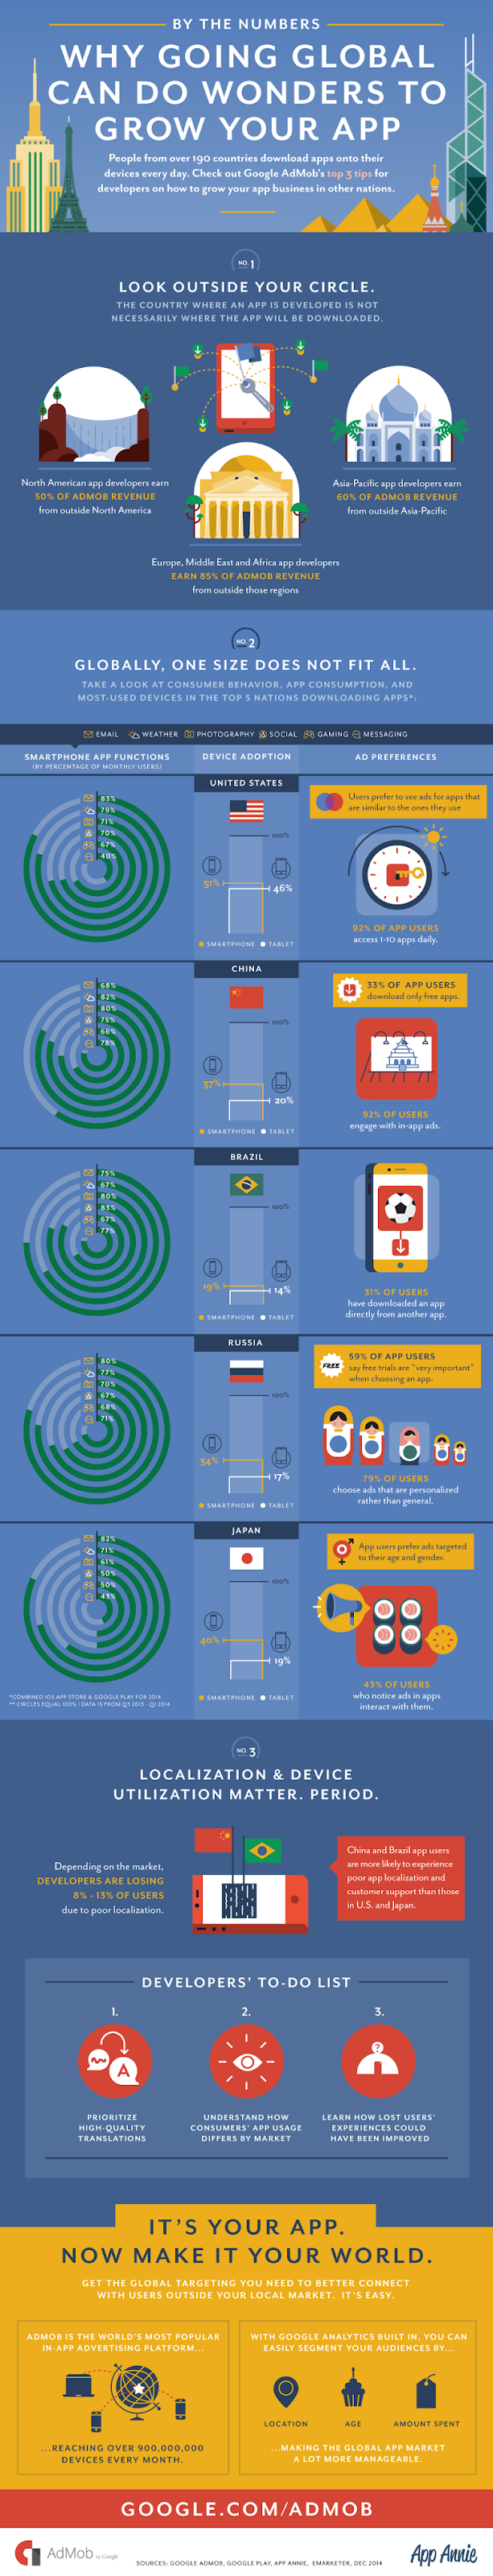 Going Global Infographic